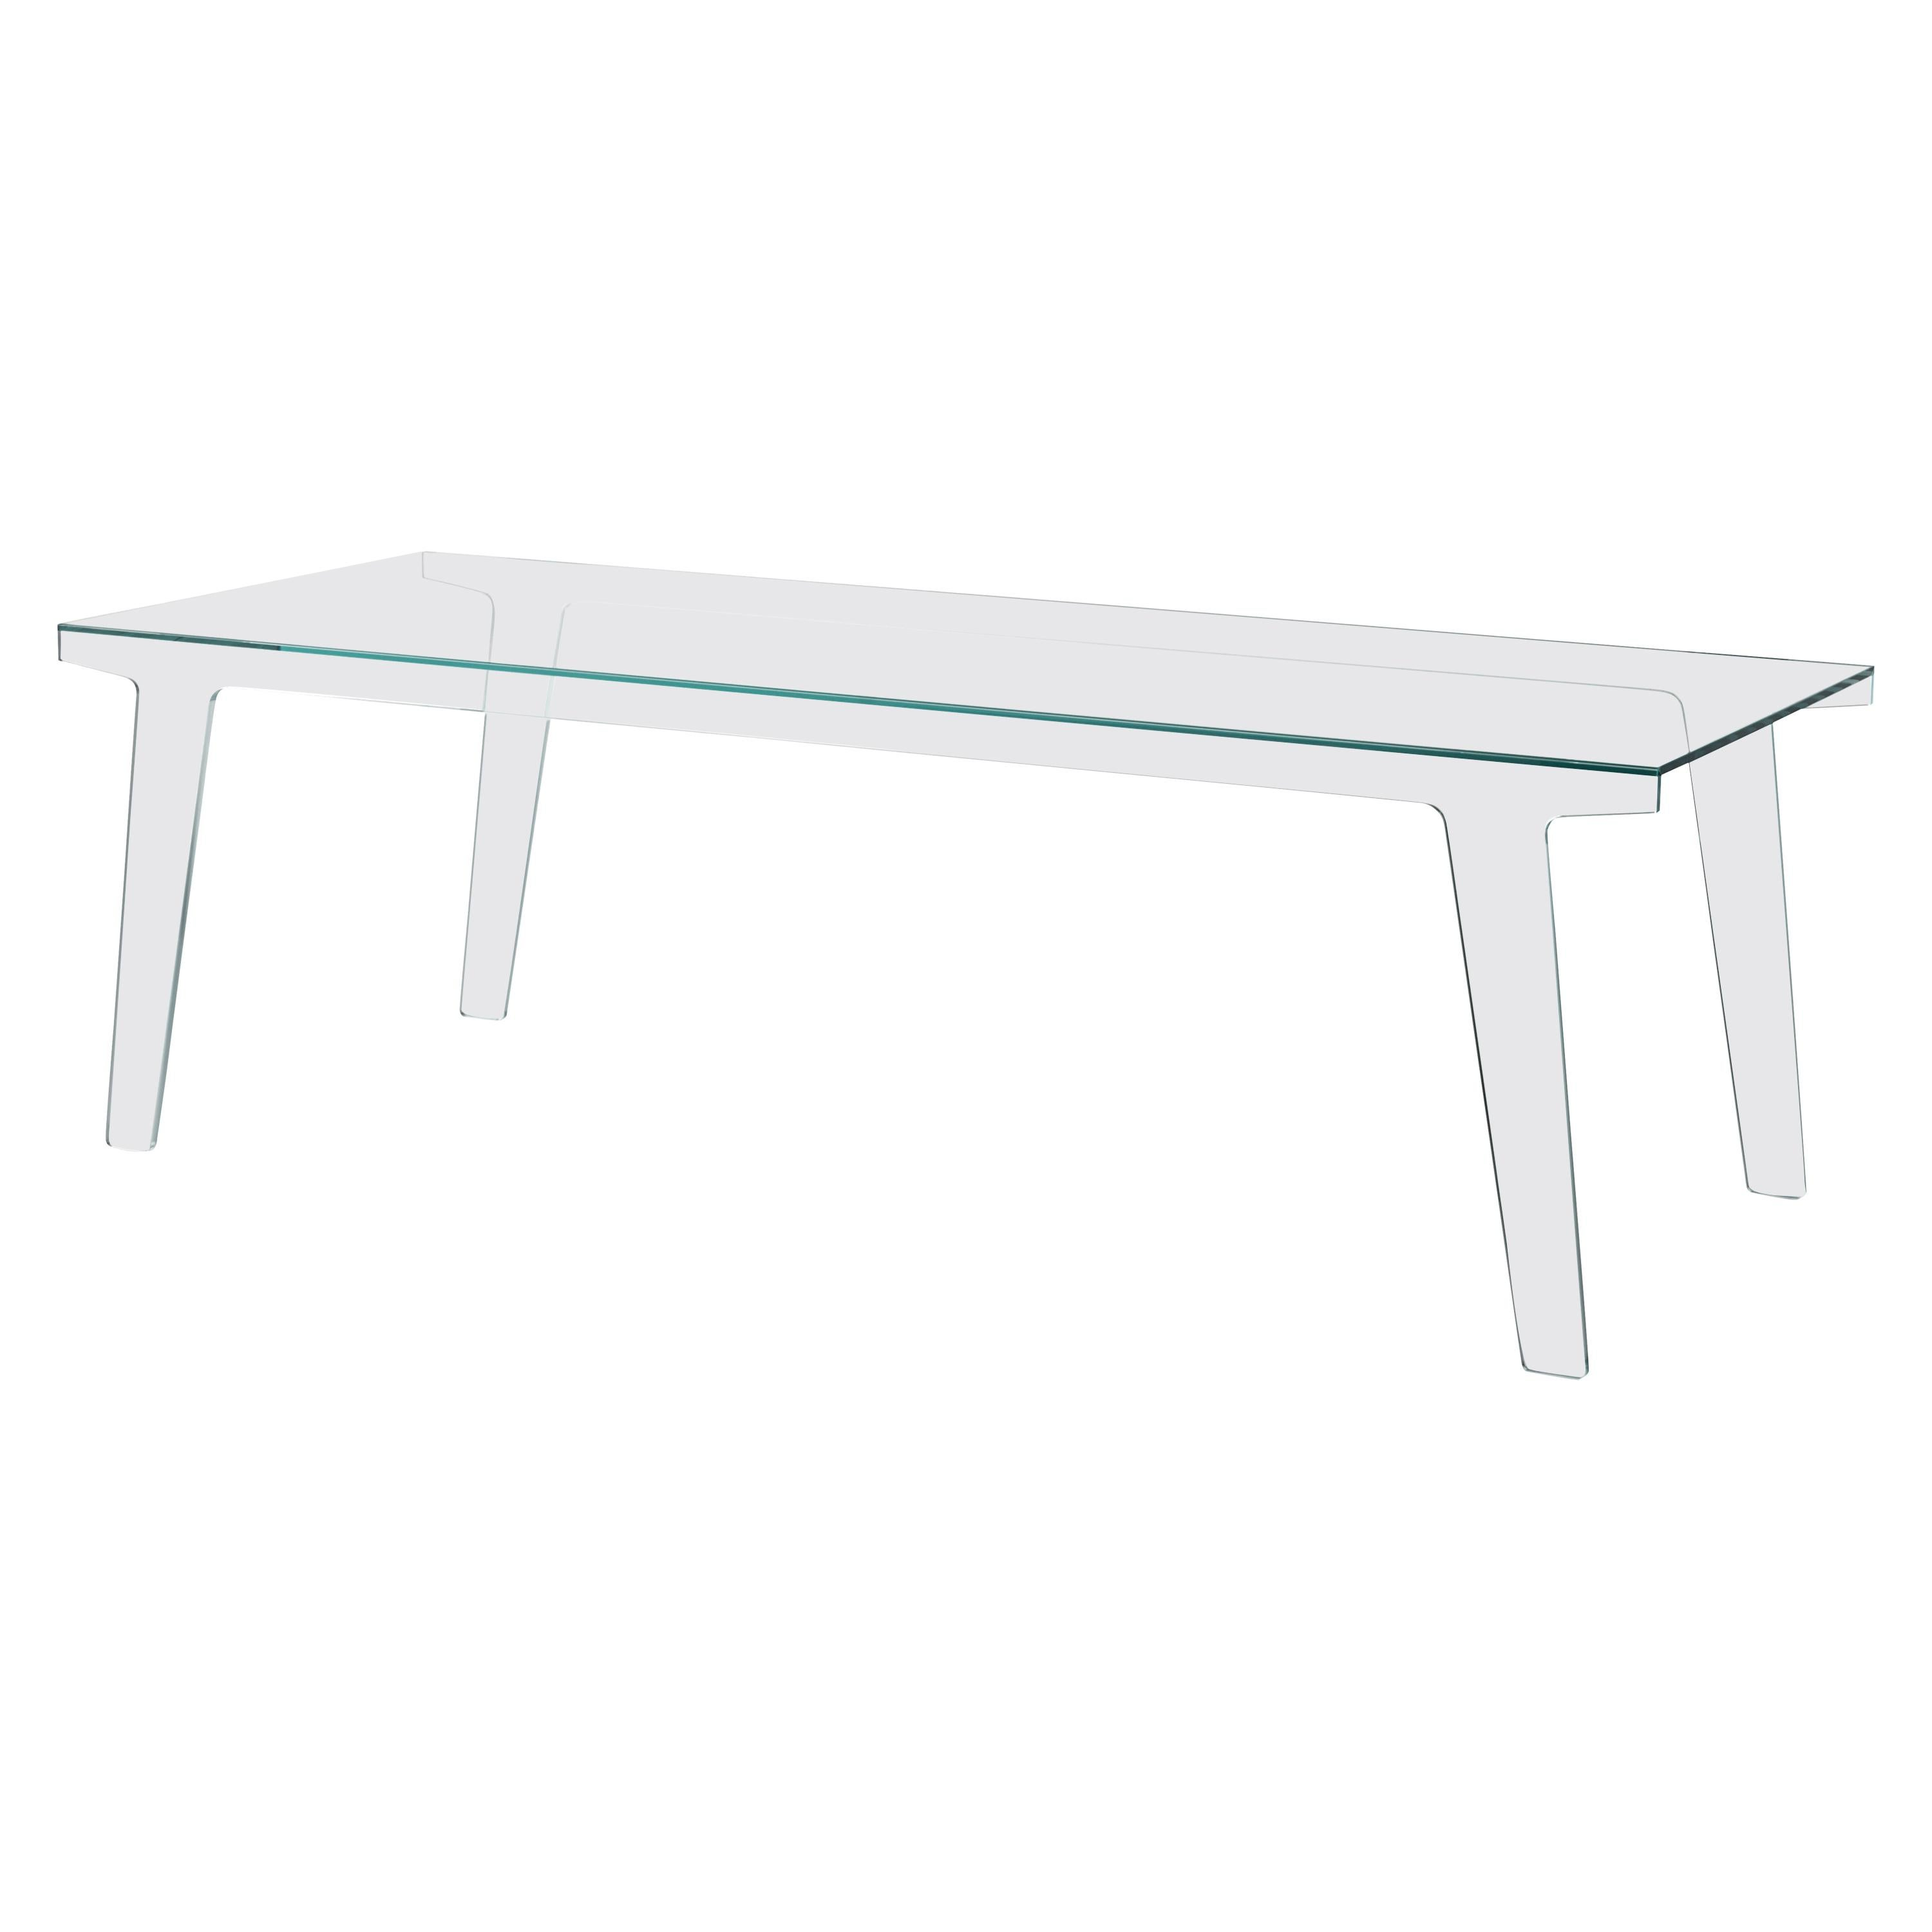 Faint Large High Transparent Table, by Patricia Urquiola for Glas Italia